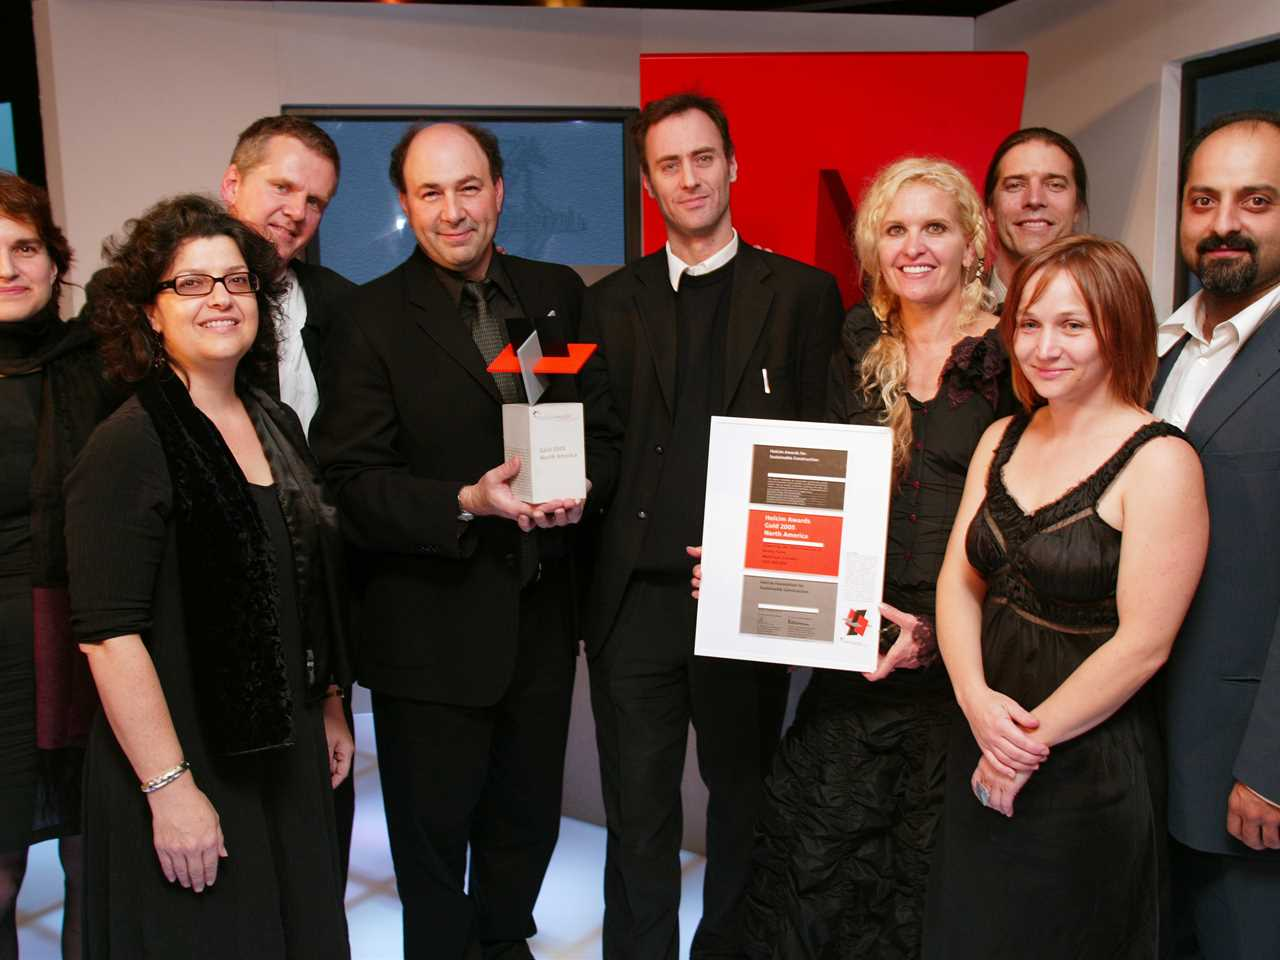 Representatives from the team winning the Holcim Award Gold 2005 - North America prize (l-r): …